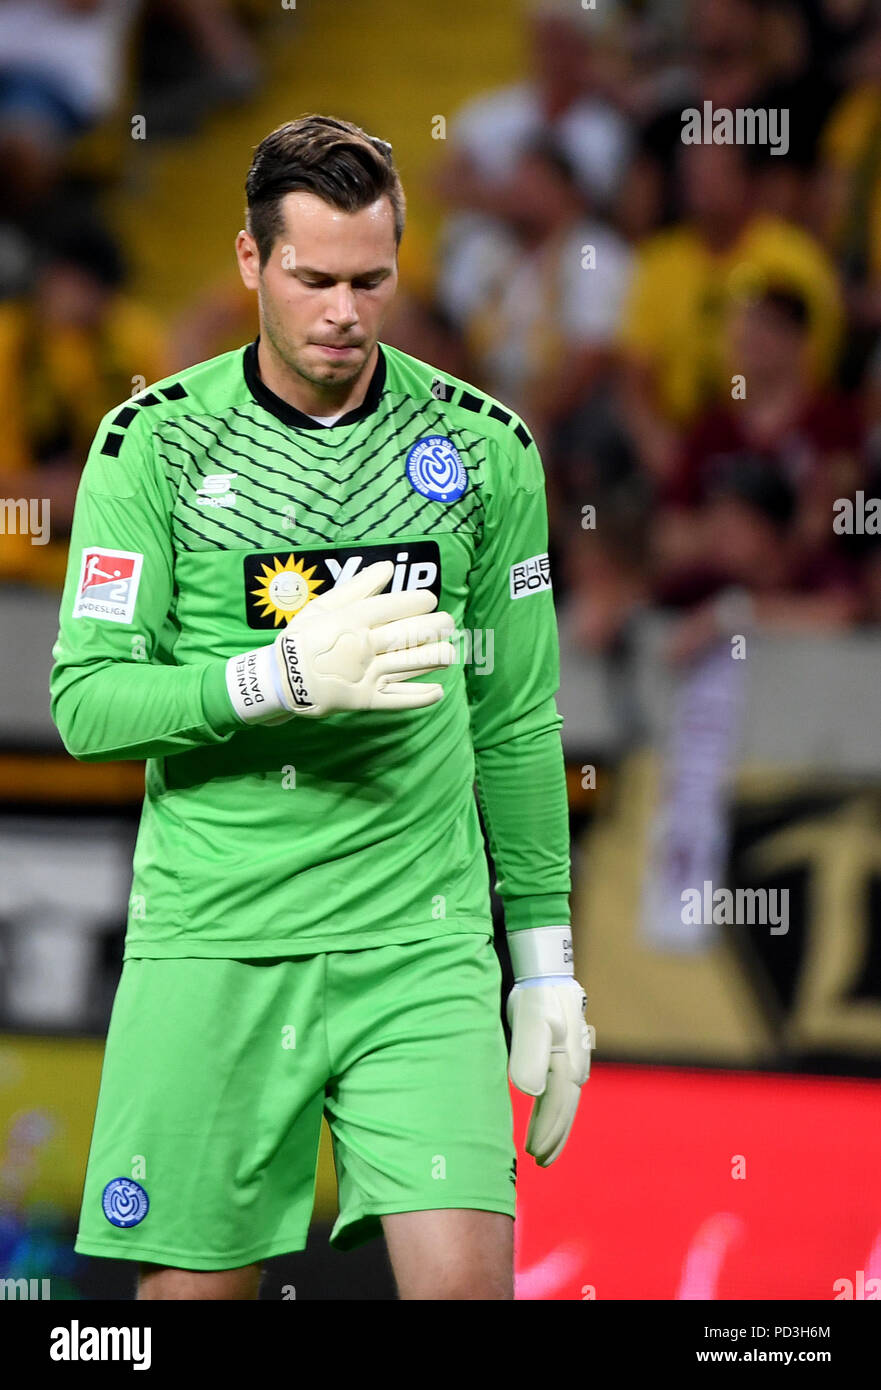 Dresden, Germany. 06th Aug, 2018. 06.08.2018, Saxony, Dresden: Soccer, 2nd Bundesliga, 1st Matchday, Dynamo Dresden vs MSV Duisburg in the DDV Stadium. Duisburg goalkeeper Daniel Davari crosses the pitch. IMPORTANT NOTE: DFL regulations prohibit any use of photographs as image sequences and/or quasi-video. Credit: Monika Skolimowska/dpa-Zentralbild/dpa/Alamy Live News - Stock Image